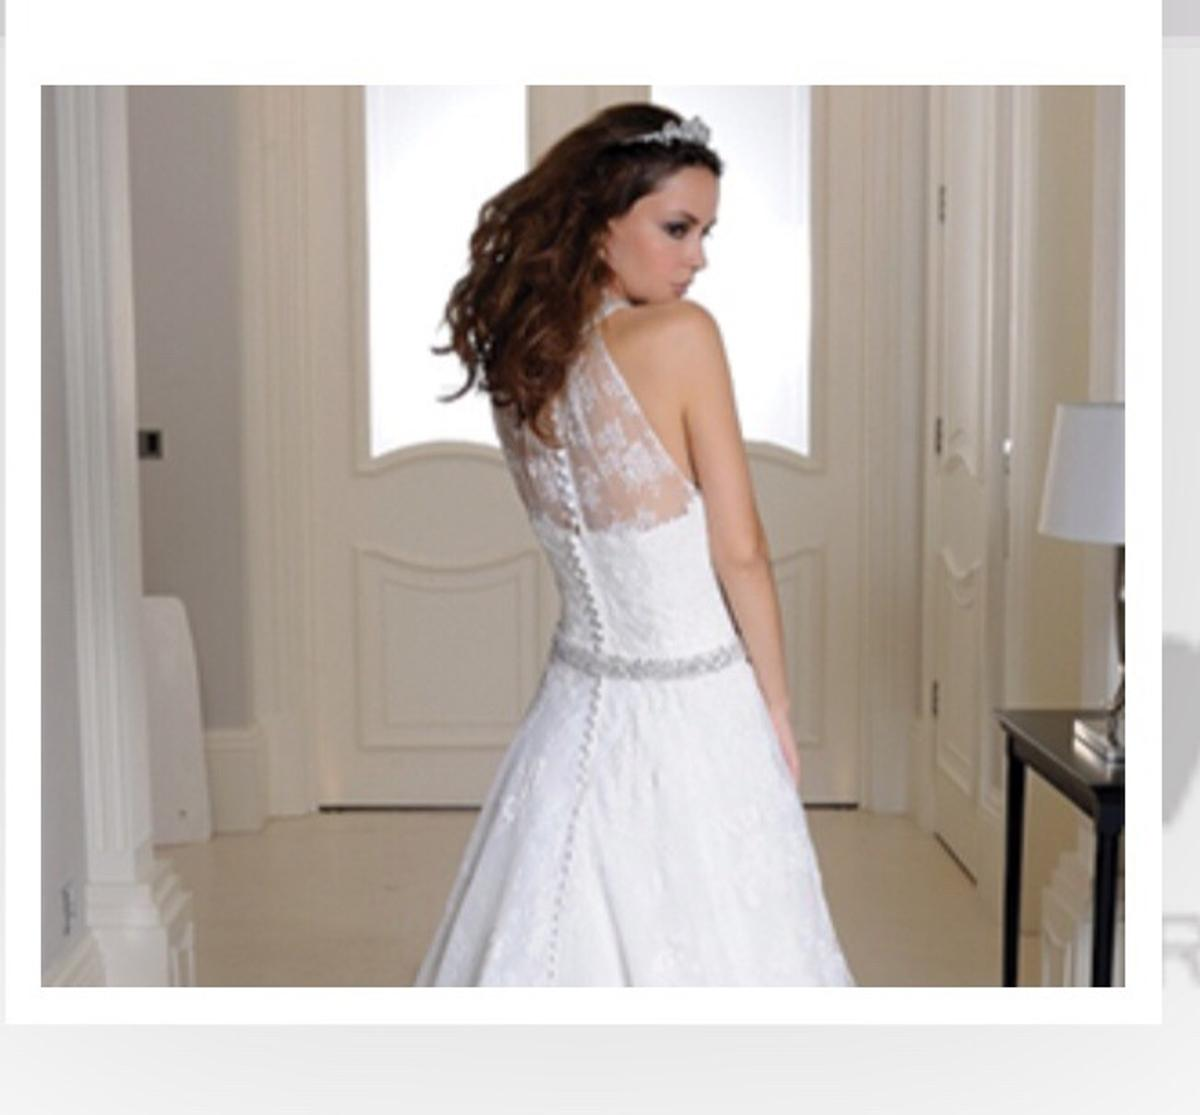 half price later sale retailer New wedding dress in NN6 Kettering for £600.00 for sale - Shpock